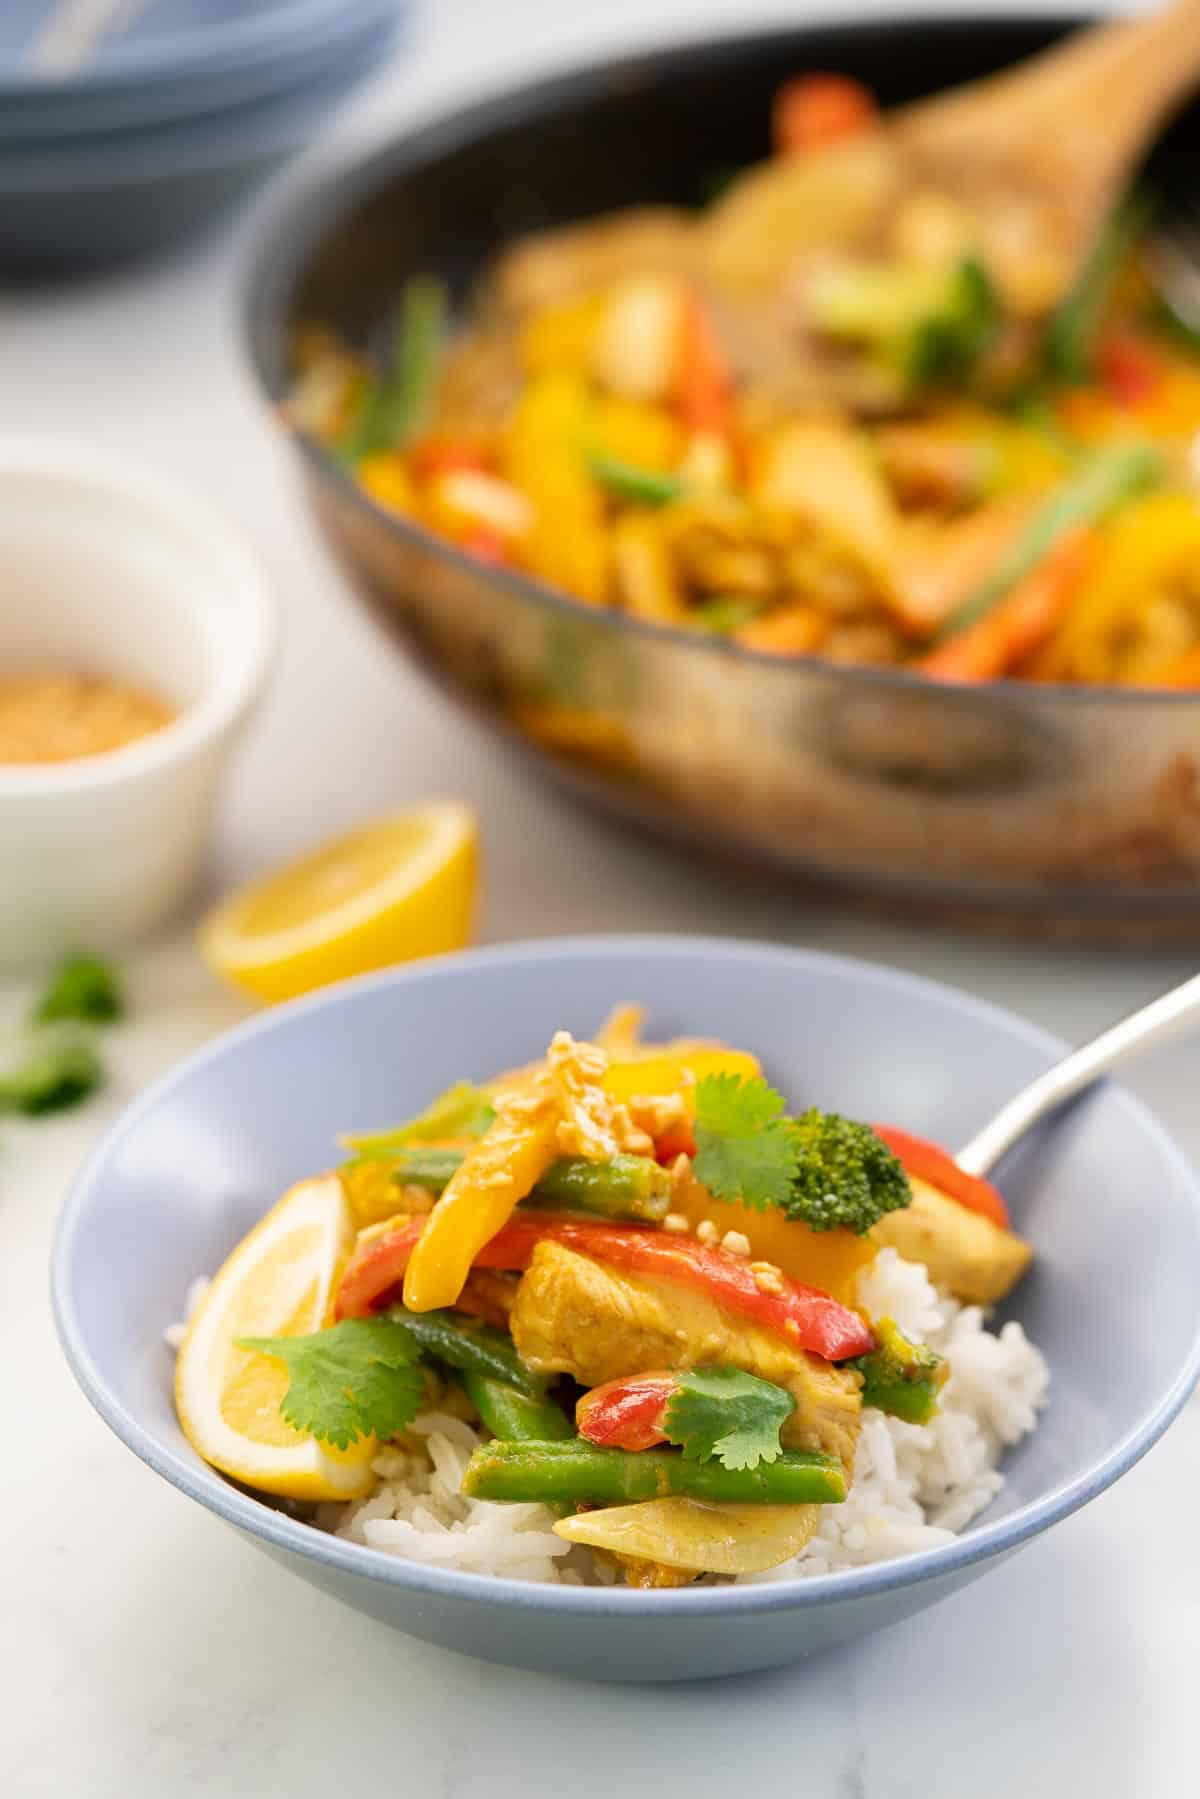 A bowl of chicken satay stir fry on a bed of rice, with a large fry pan in the background.